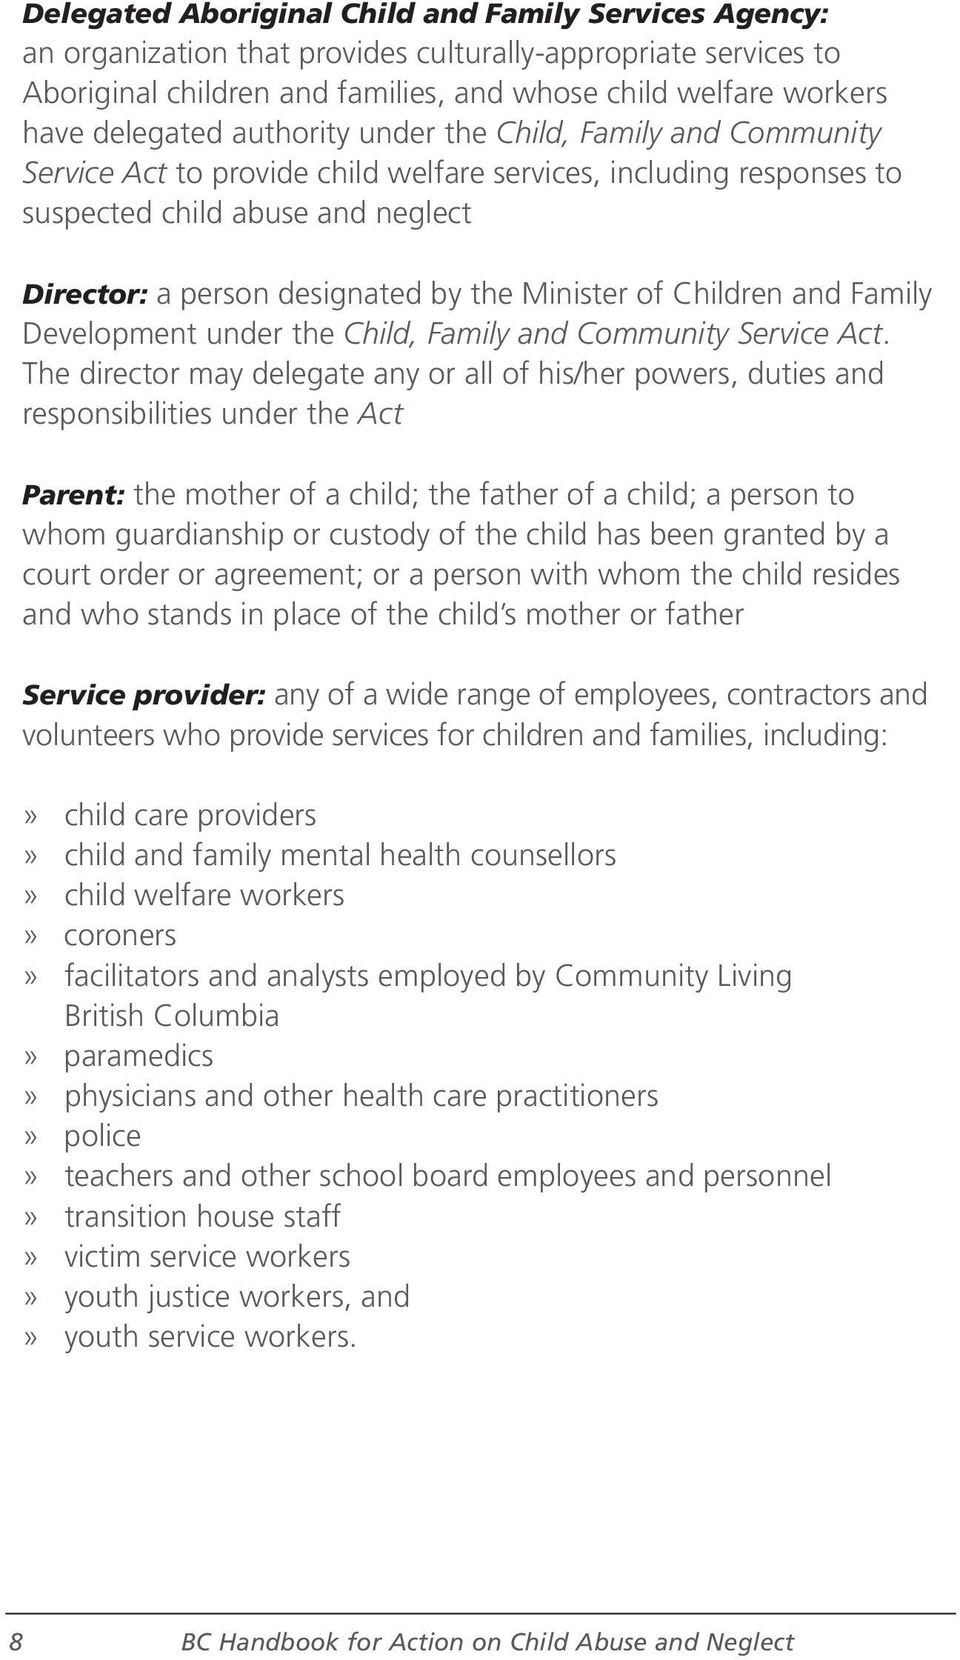 Minister of Children and Family Development under the Child, Family and Community Service Act.